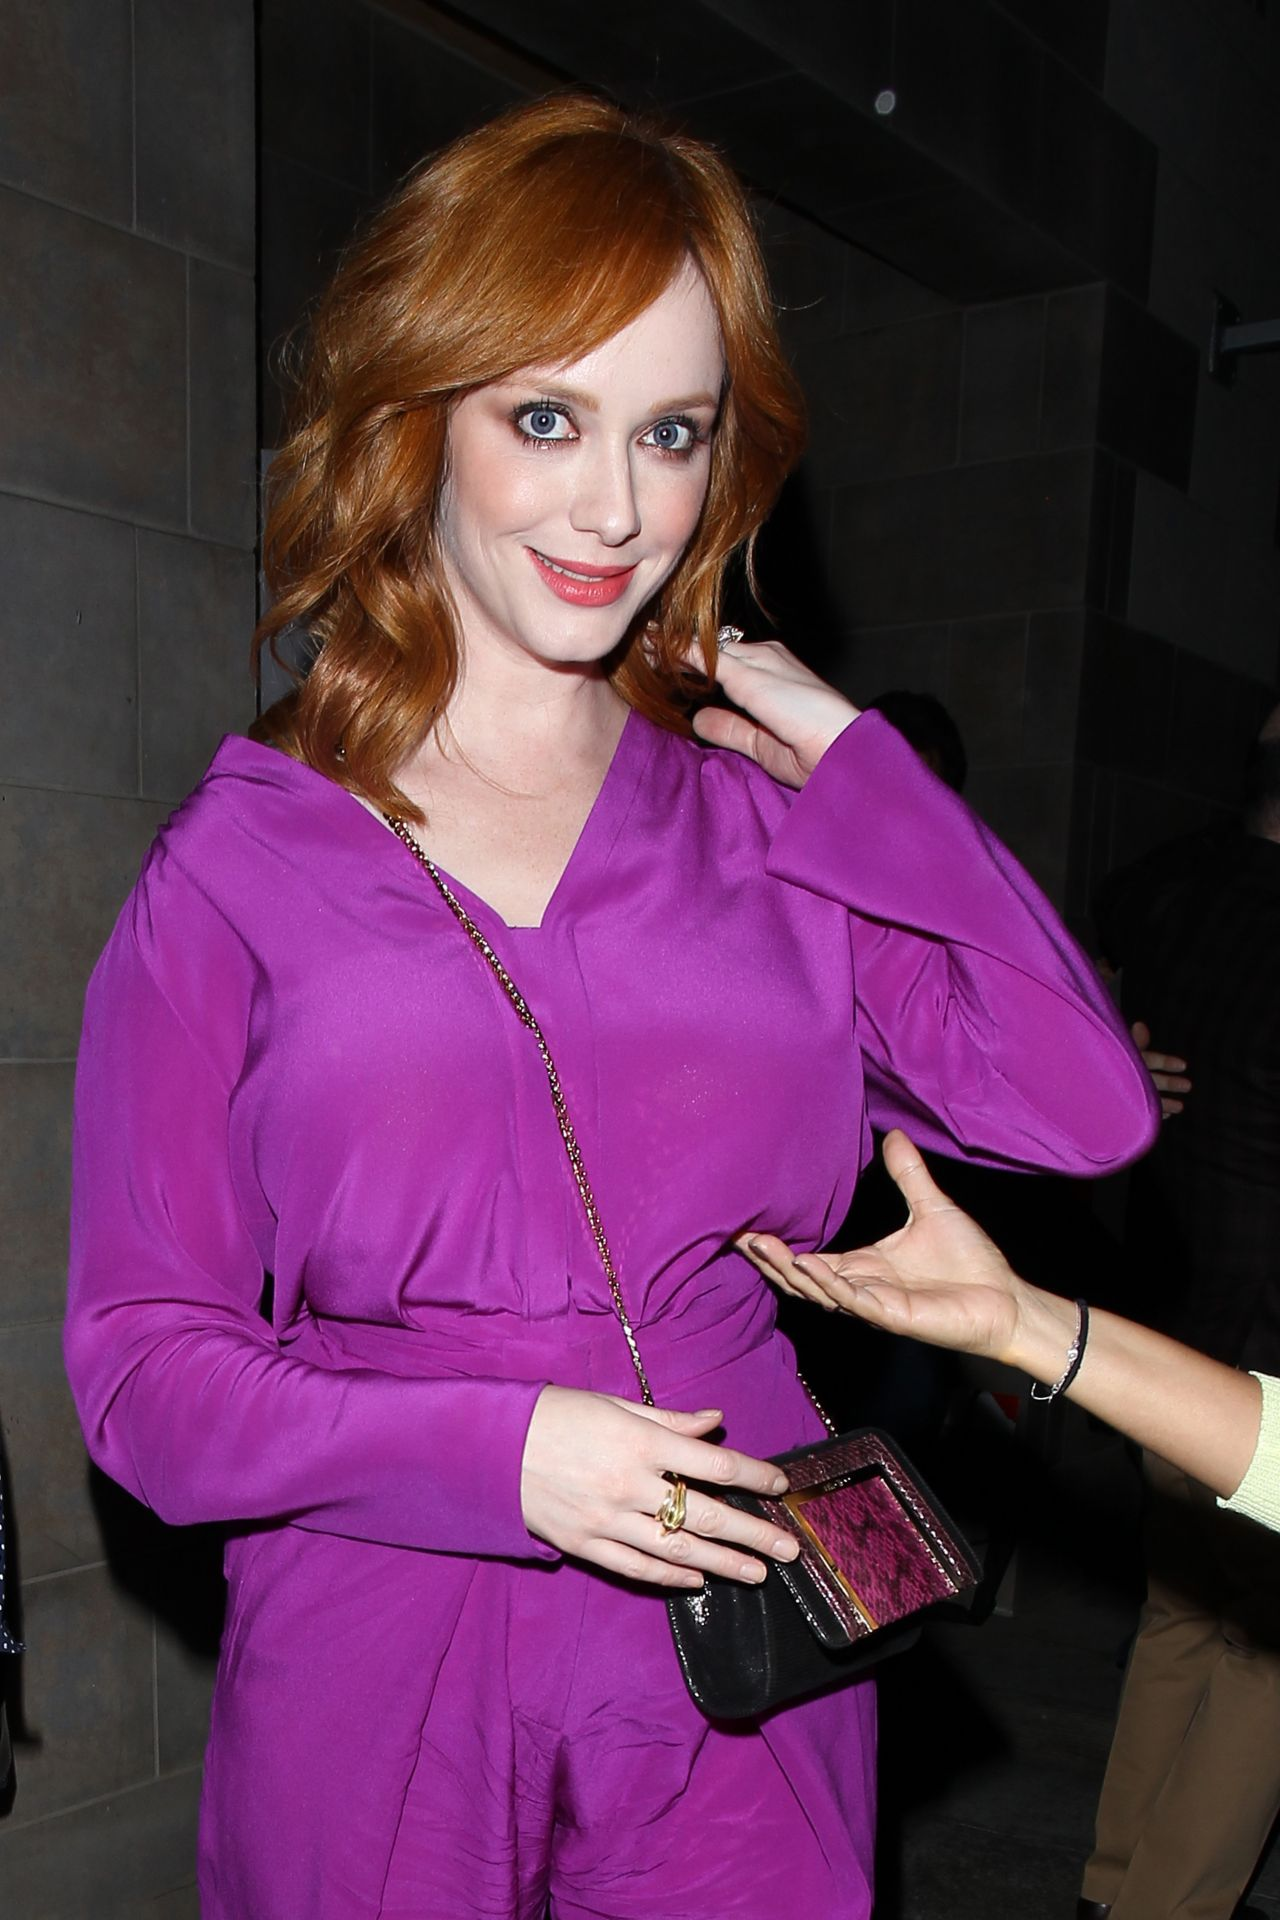 Christina Hendricks Leaving The Landmark Theaters in Los Angeles - June 2014